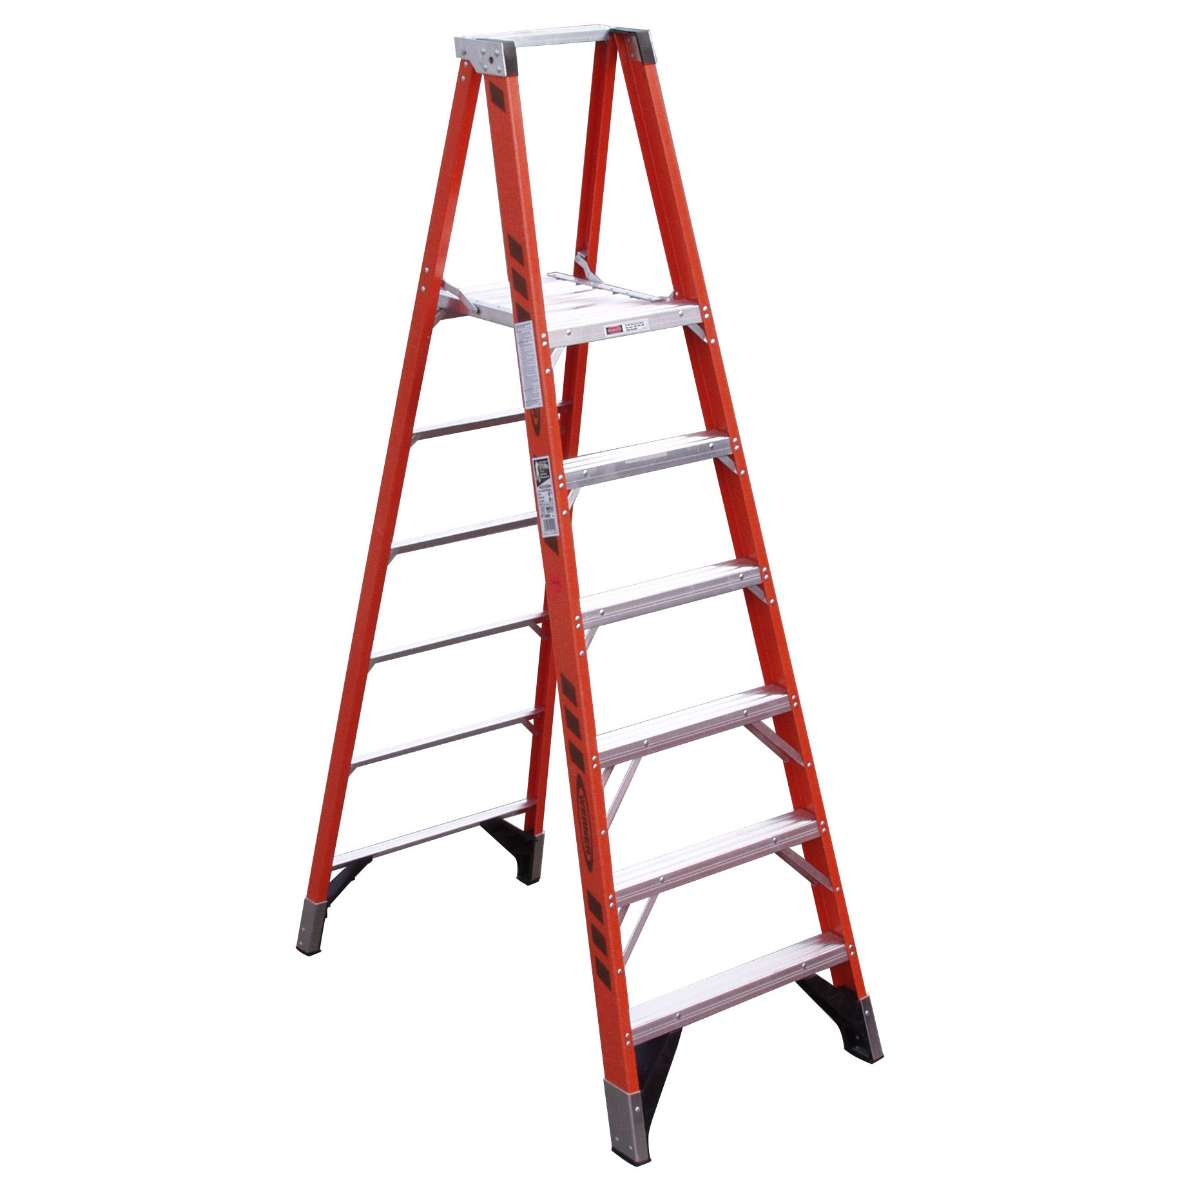 Fiberglass Platform Step Ladder - 375 lb. Capacity (P7400 Series)